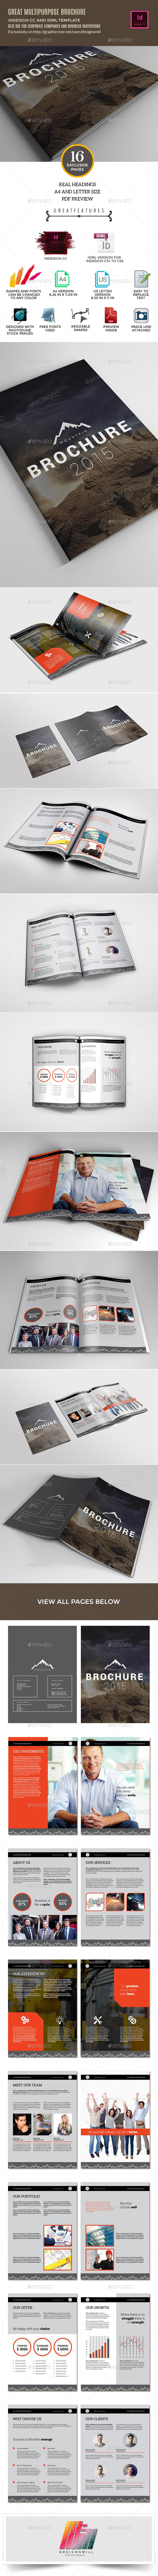 GraphicRiver Mountain Brochure Template for Business Use 10442173